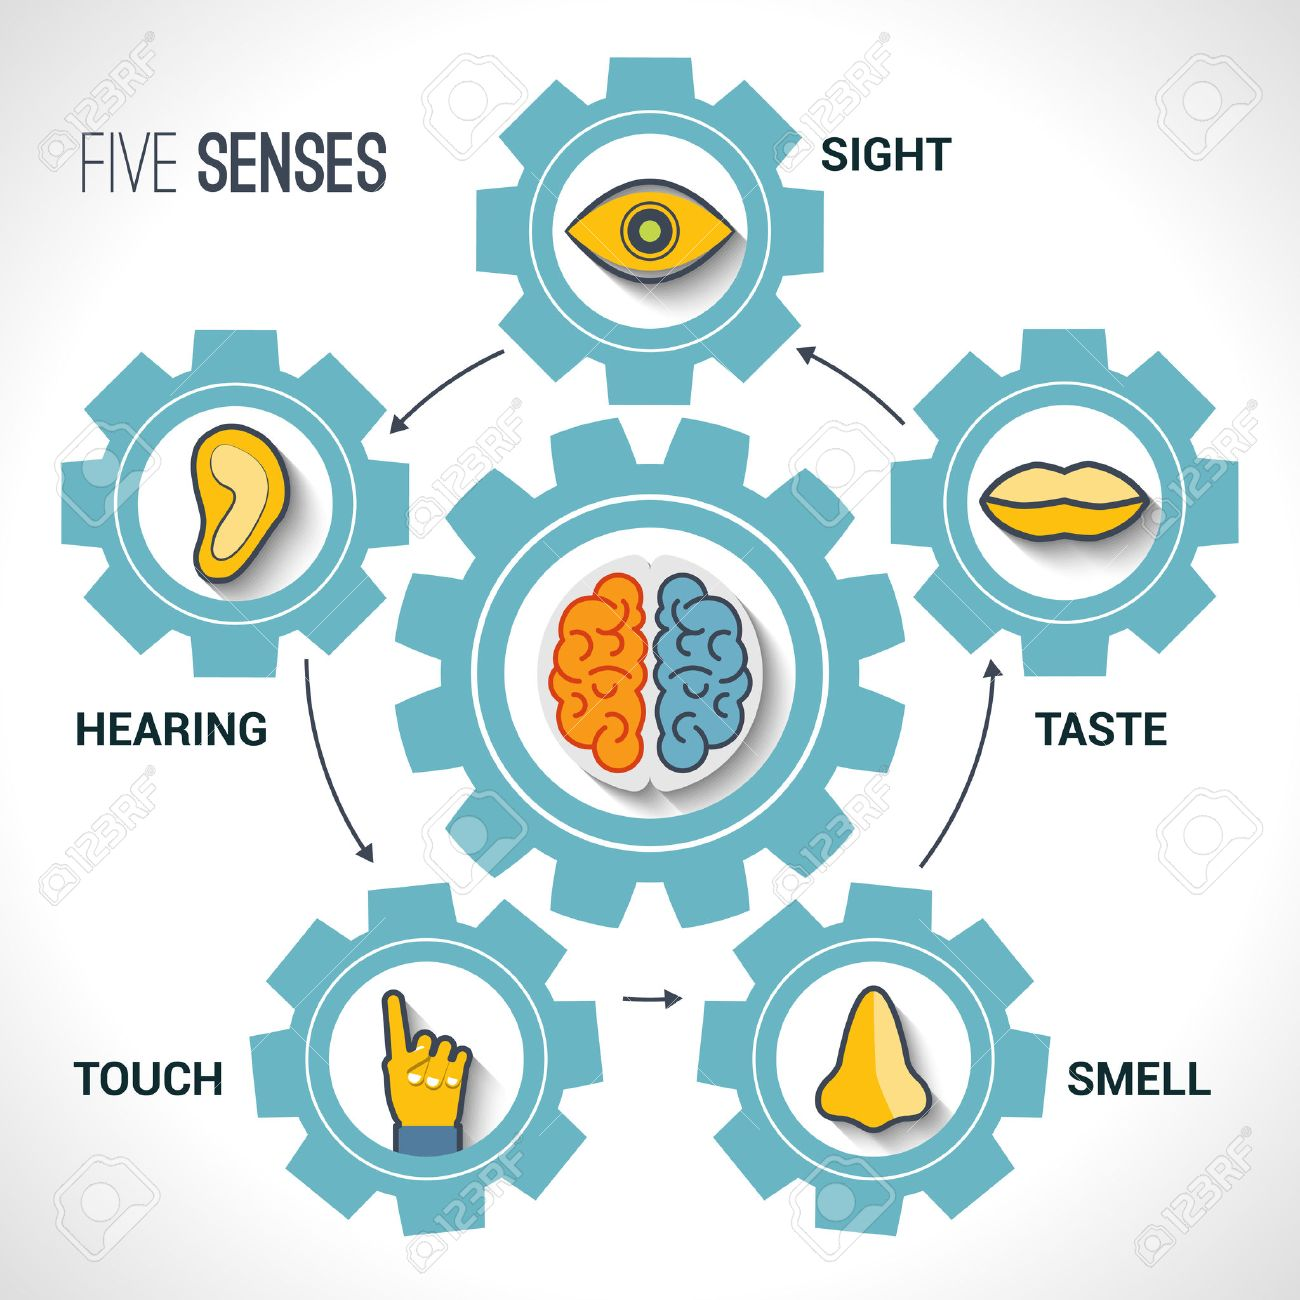 290 Five Senses Stock Vector Illustration And Royalty Free Five ...